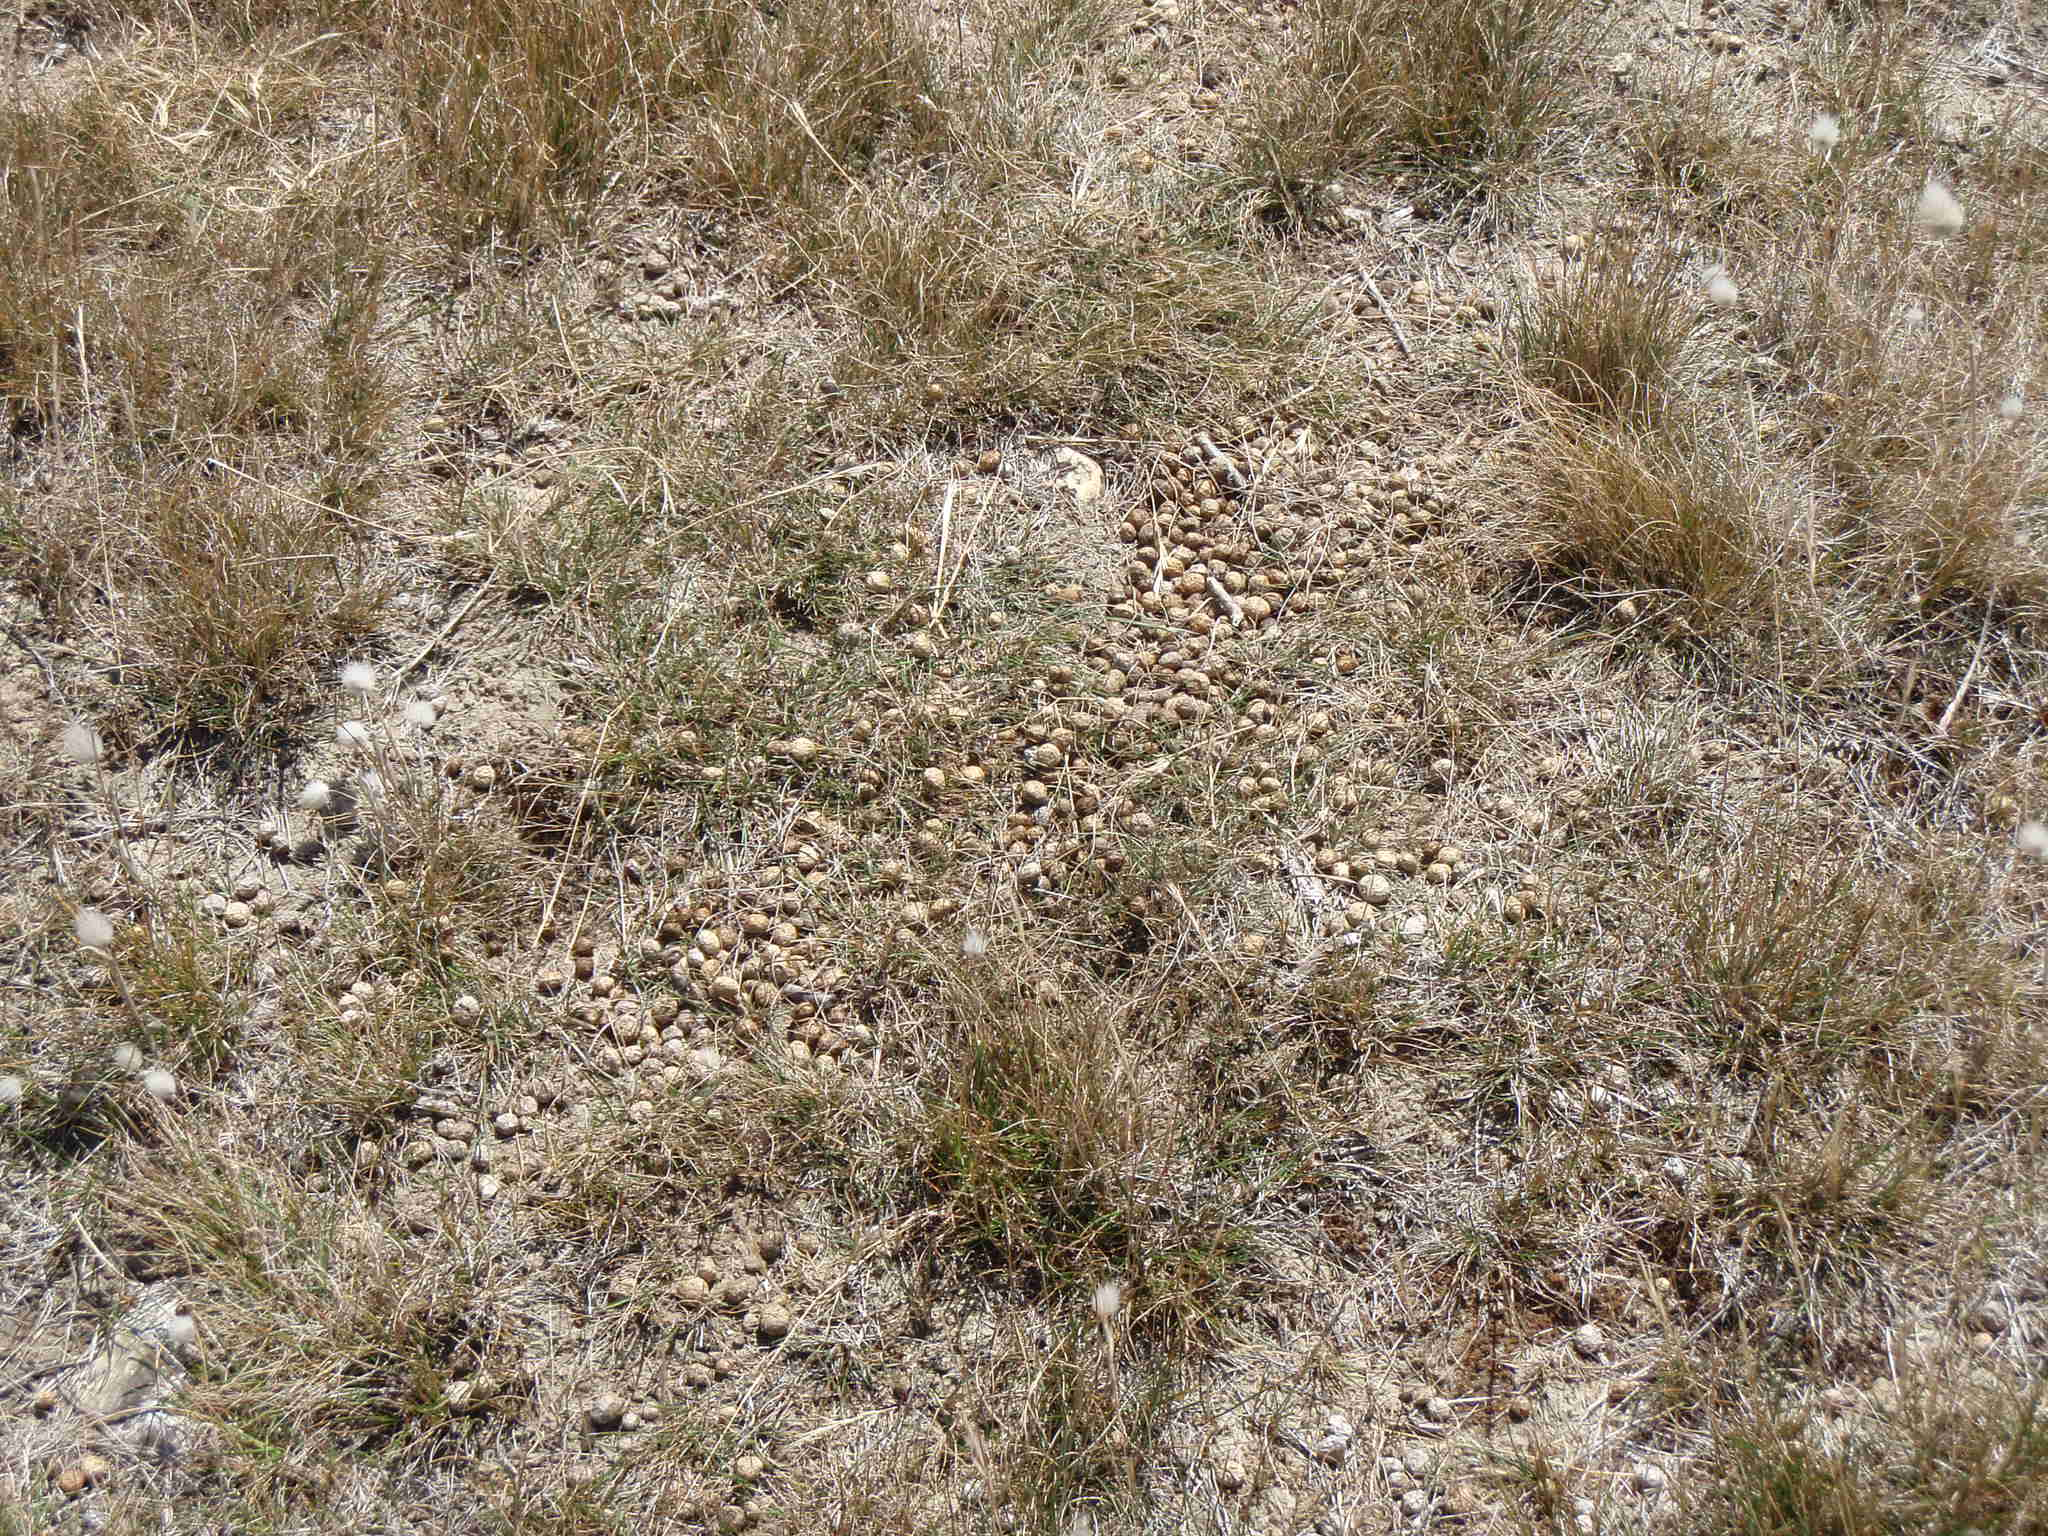 An example of a fresh rabbit buck heap, areas with a lot of these indicate a high number of rabbits present.